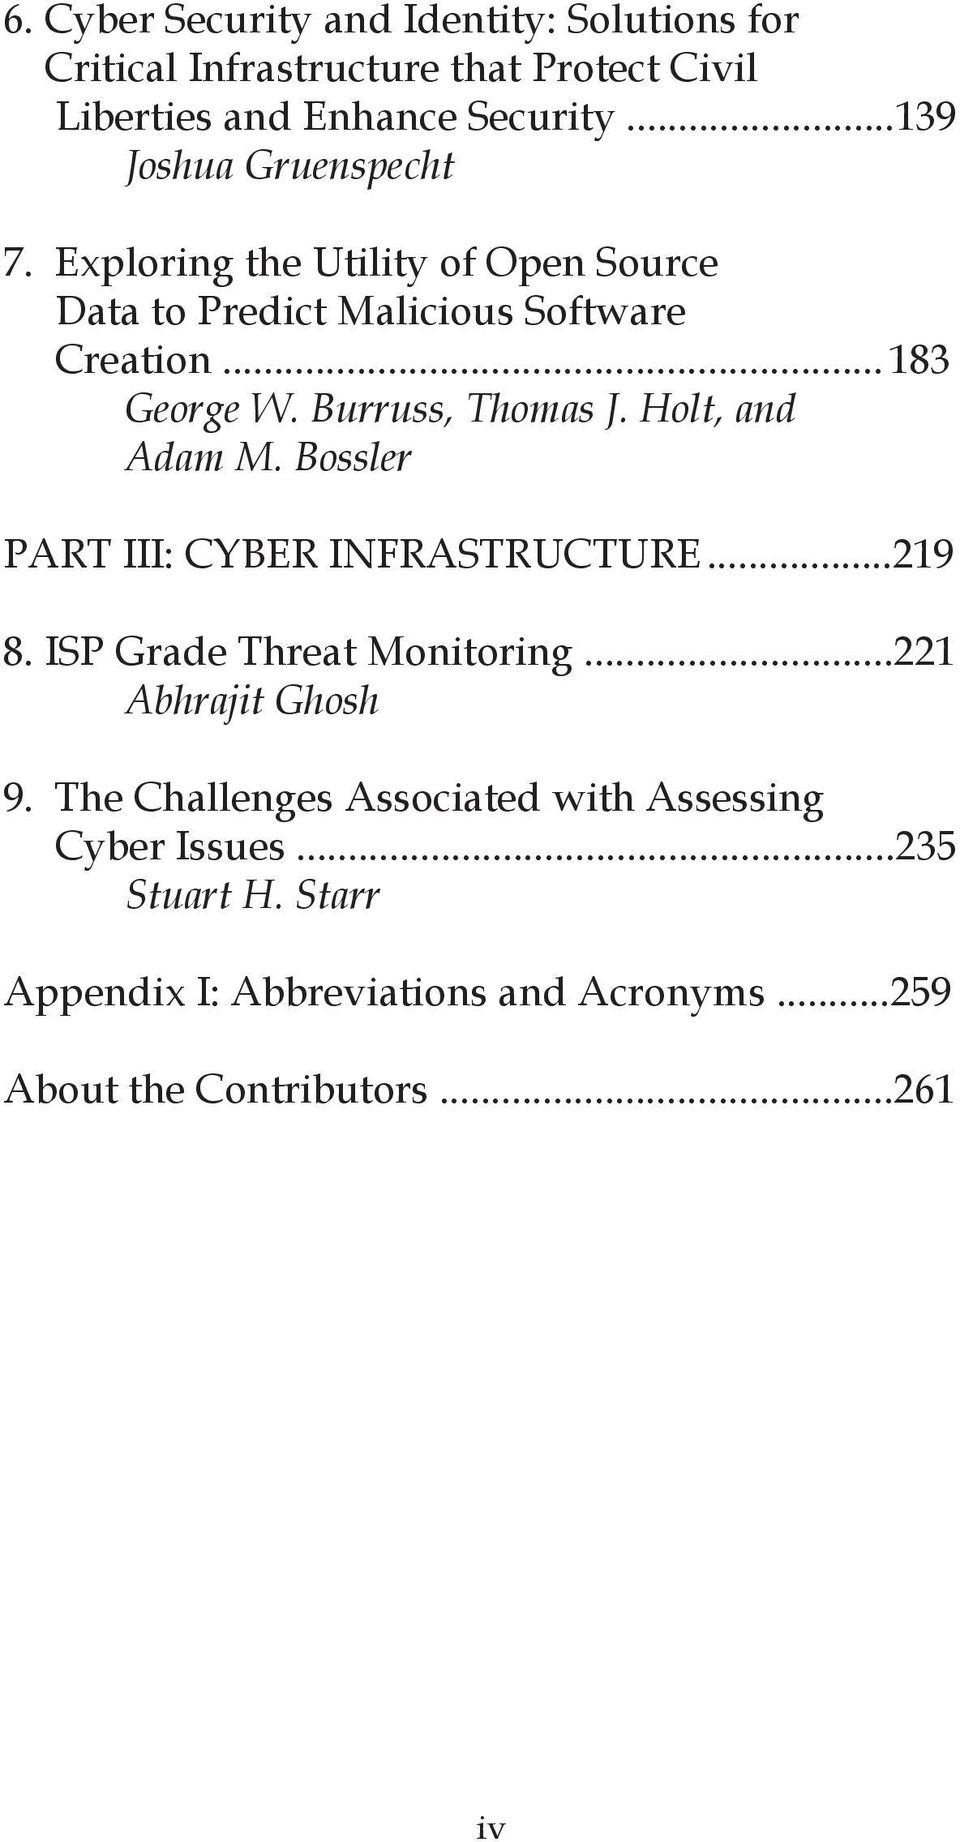 Burruss, Thomas J. Holt, and Adam M. Bossler PART III: CYBER INFRASTRUCTURE...219 8. ISP Grade Threat Monitoring...221 Abhrajit Ghosh 9.